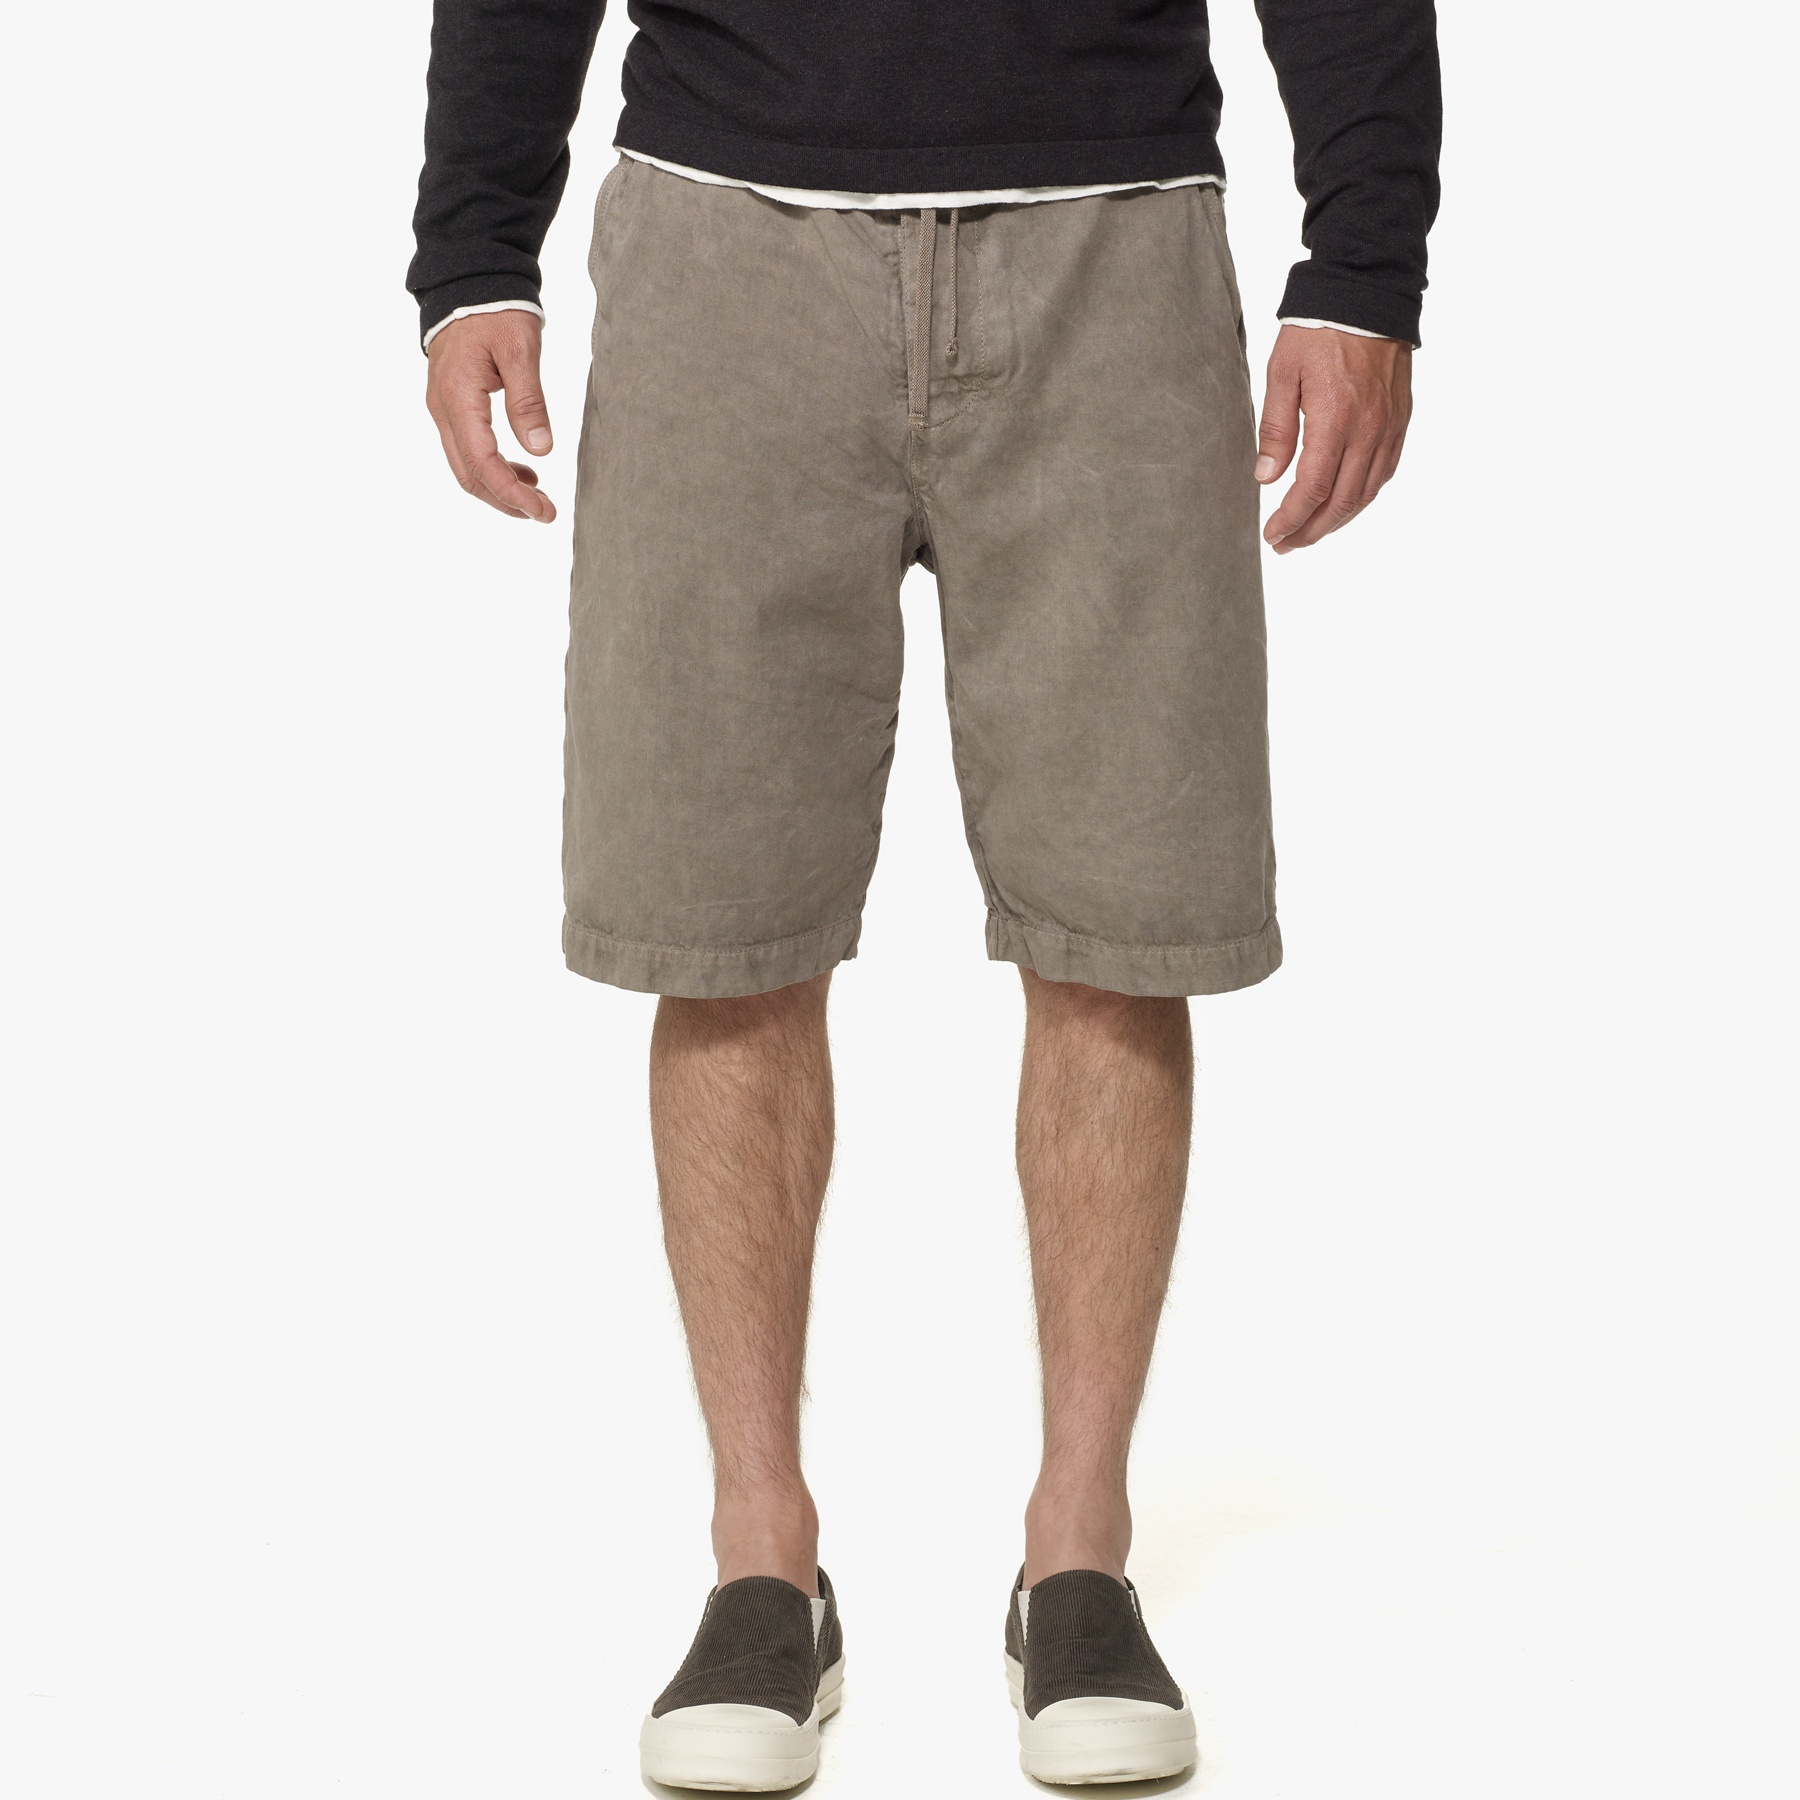 Mens Cotton Chino Shorts James Perse Discount Outlet bRTR4j